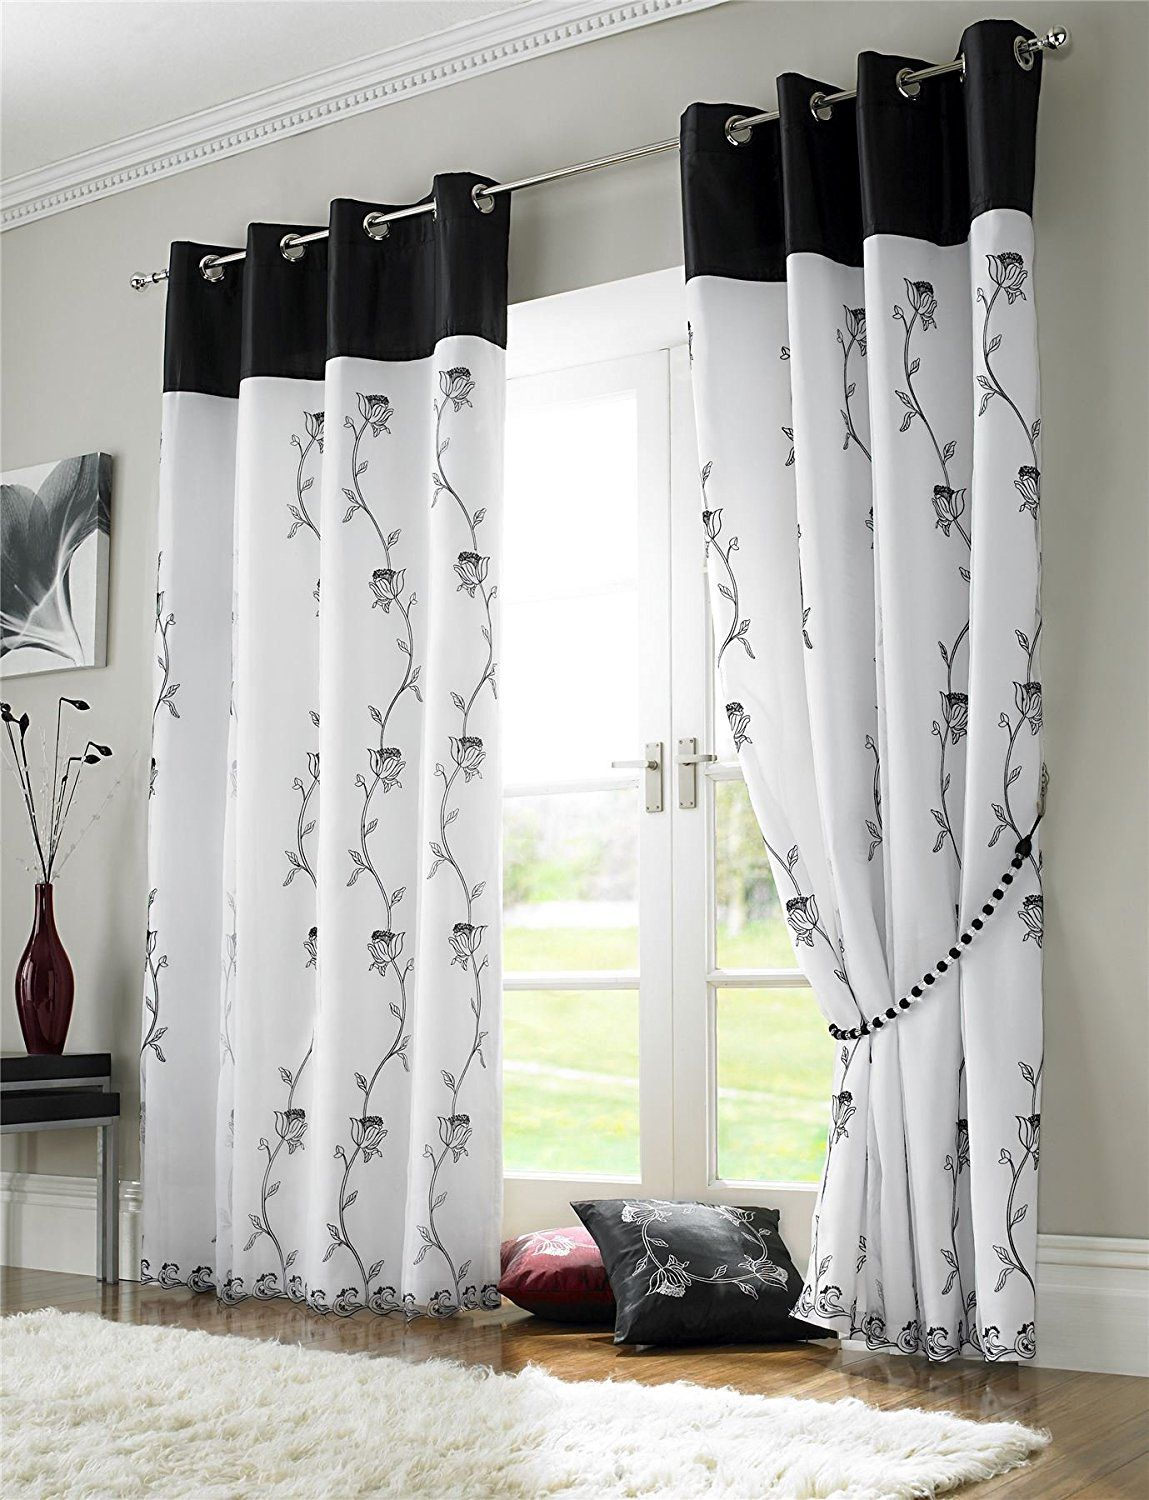 Black & White Curtains Seasonal Sale Black white